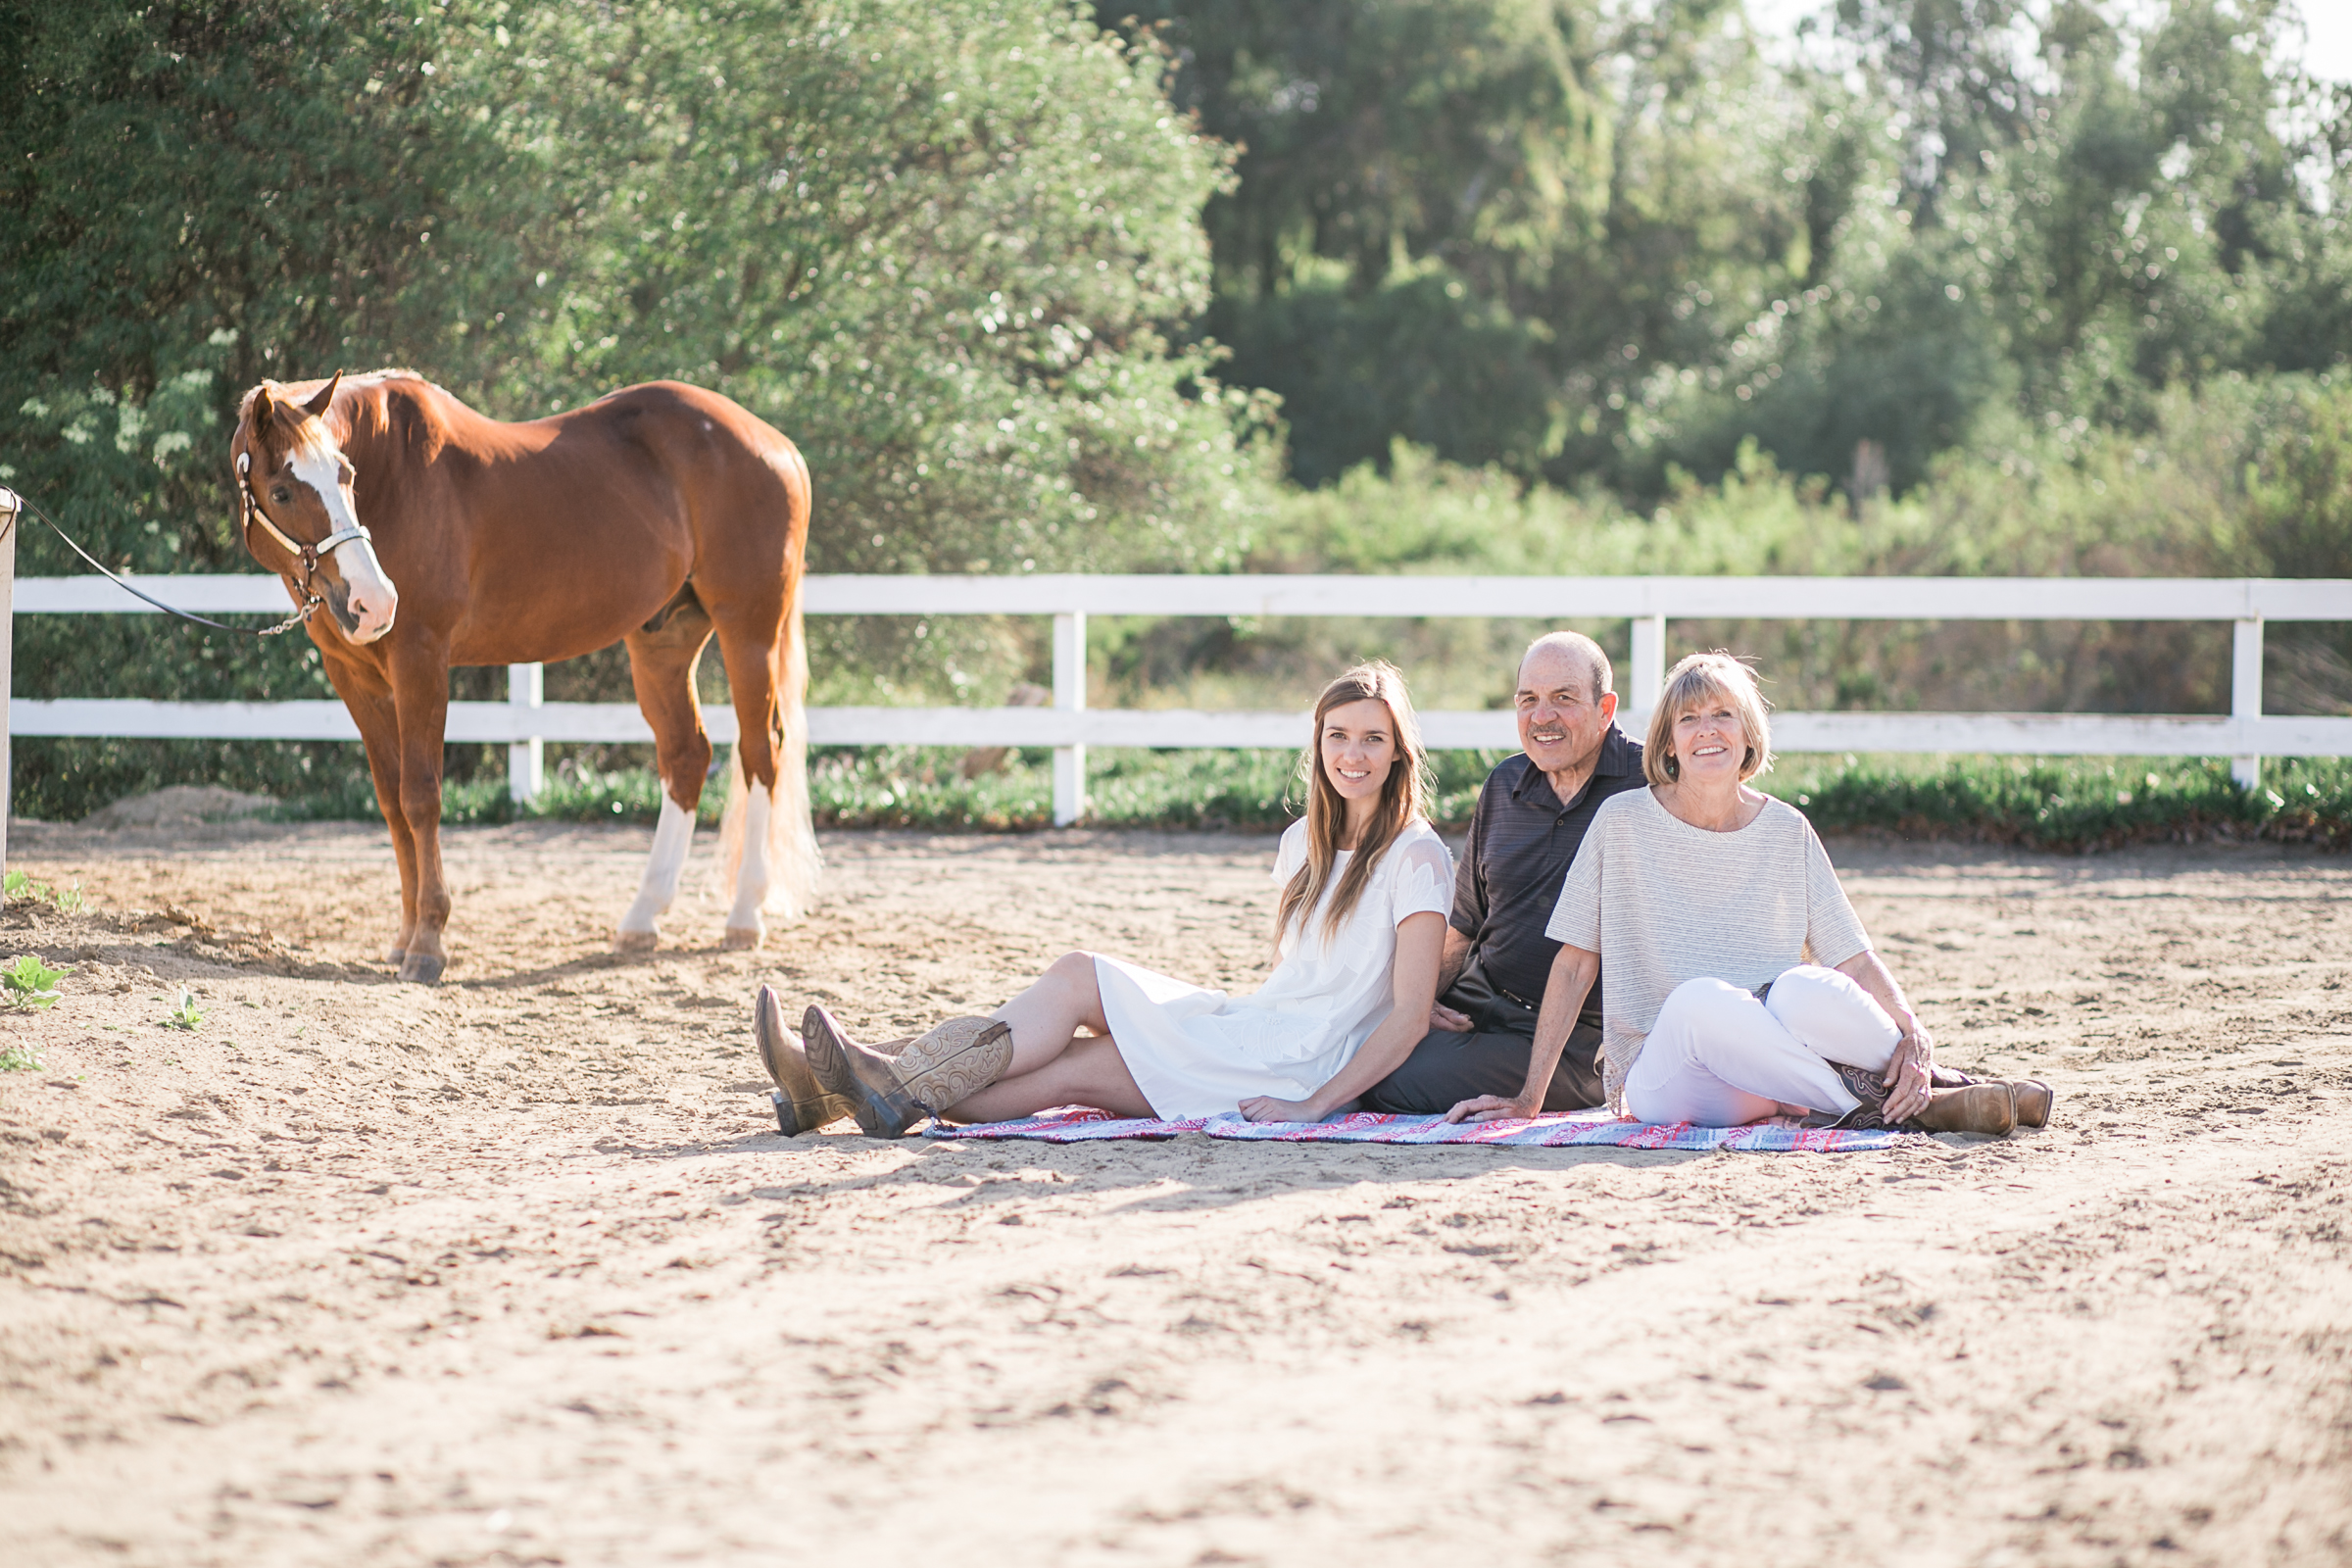 Mendola Family Session at Rancho El Camino Equestrian, Del Mar